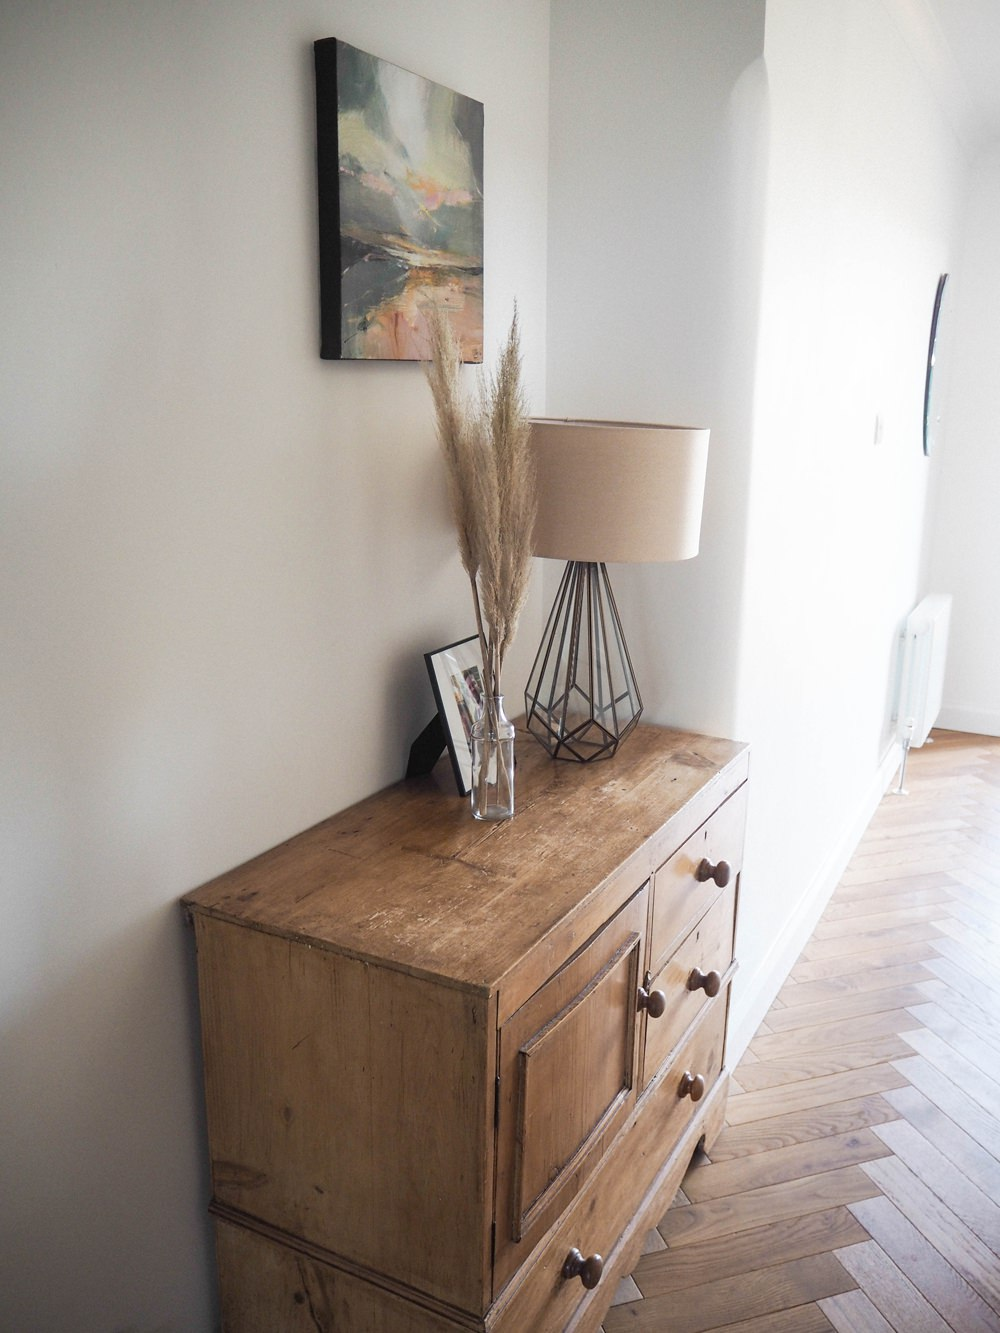 Hallway Renovation 1930s Antique Pine Chest of Drawers Glass Table Lamp Picture Frame Glass Bottle Pampas Grass Art Work Painting